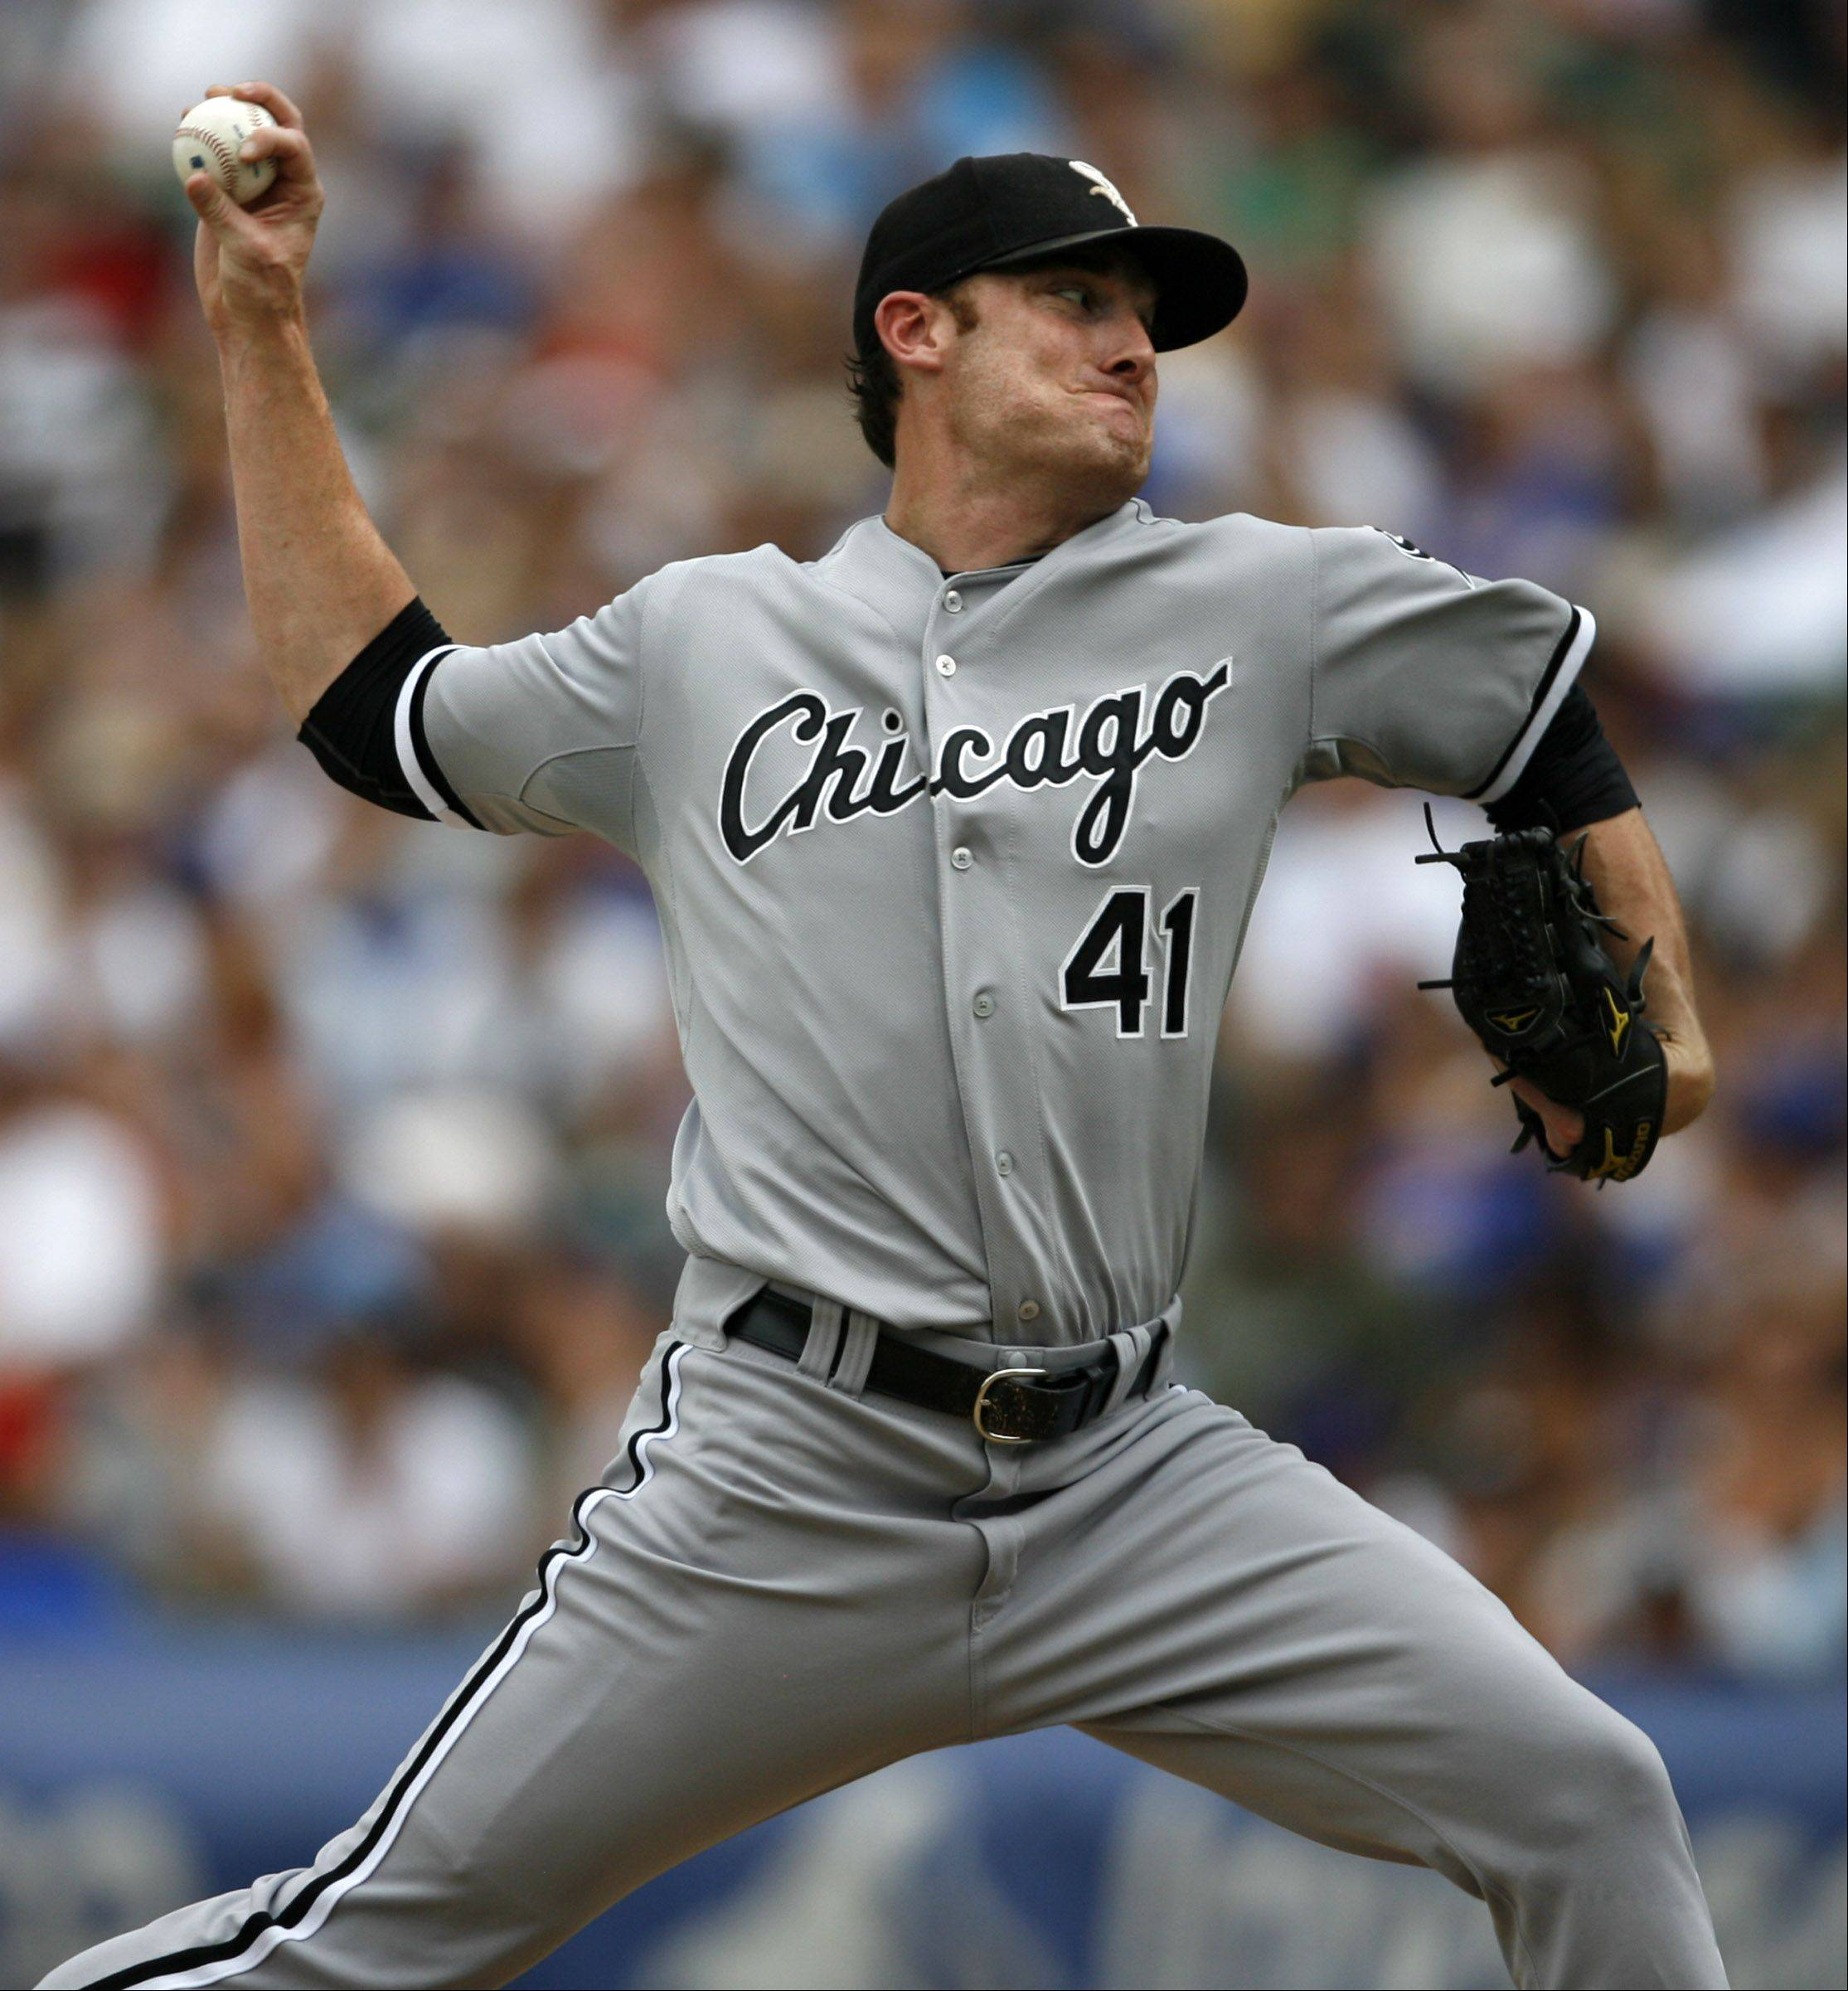 White Sox starter Philip Humber improved to 8-4 and lowered his ERA to 2.69 with Saturday's 1-0 victory over the Cubs at Wrigley Field.